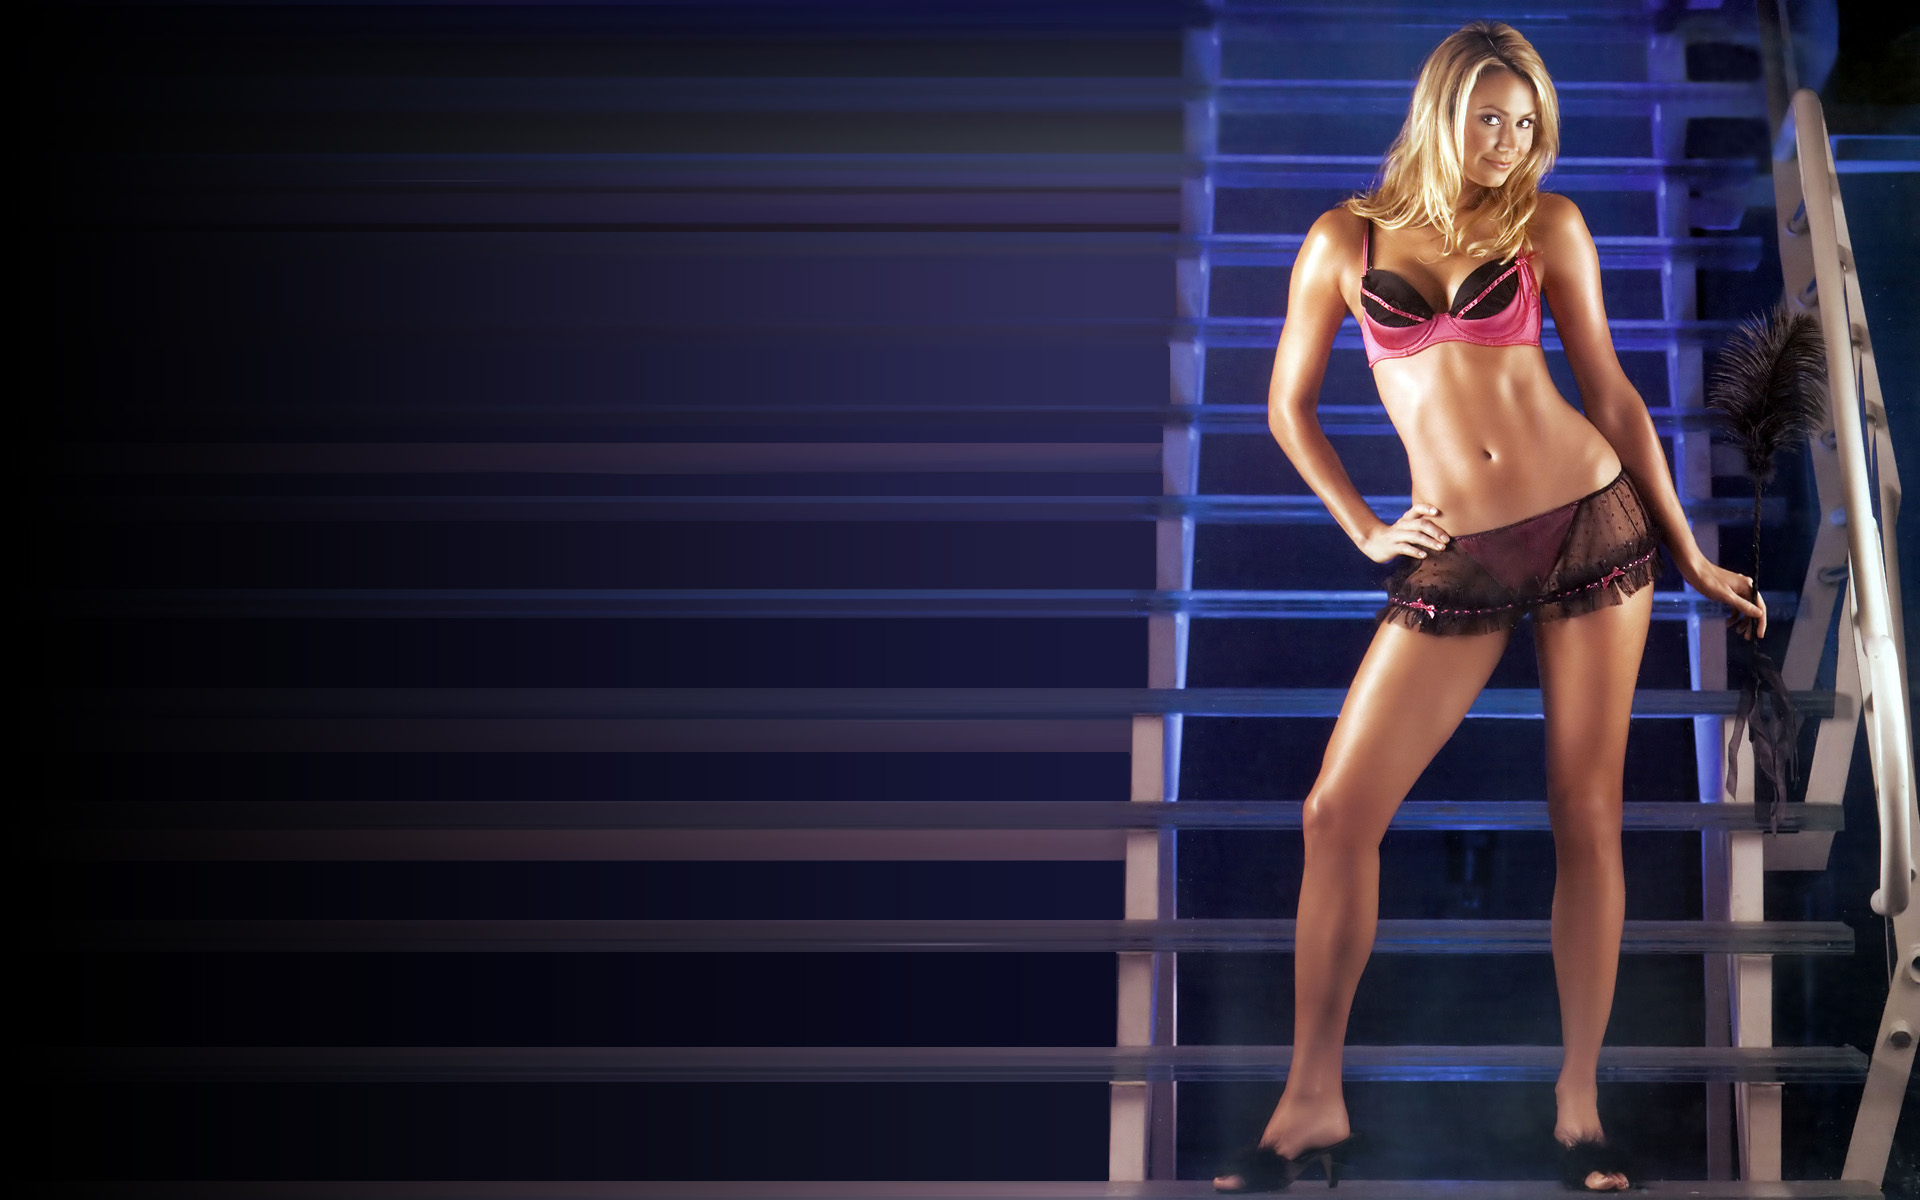 stacy keibler 1440x900 wallpapers - photo #28